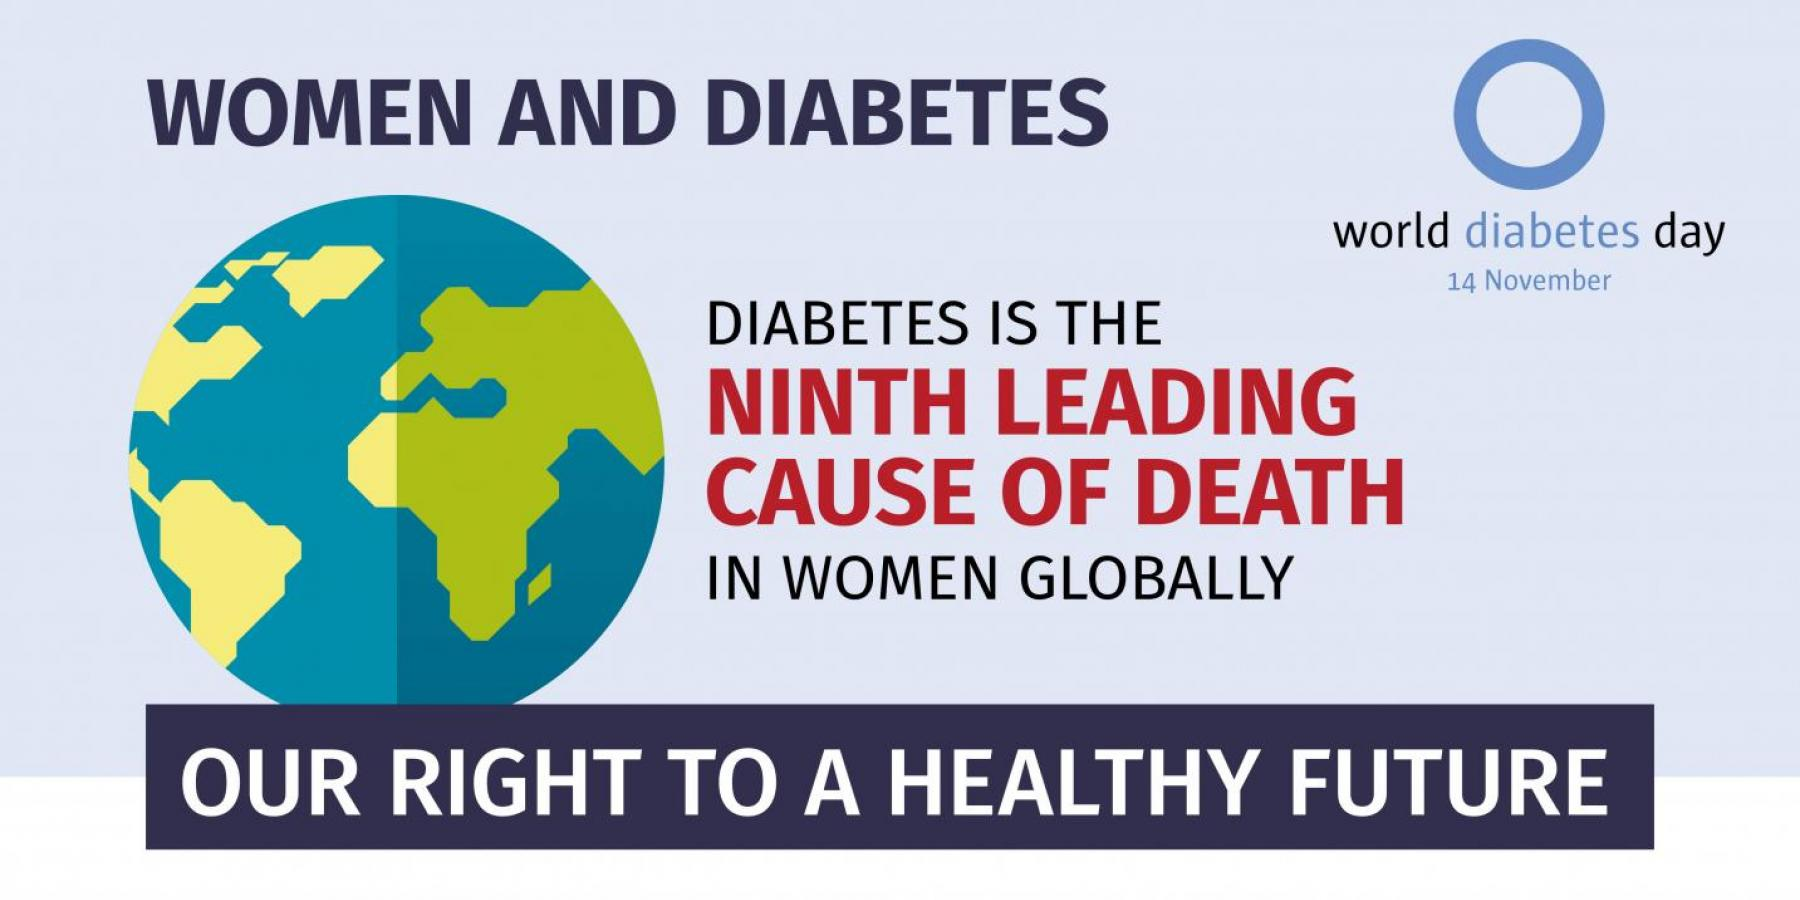 Graphic - Diabetes is 9th leading cause of death of women